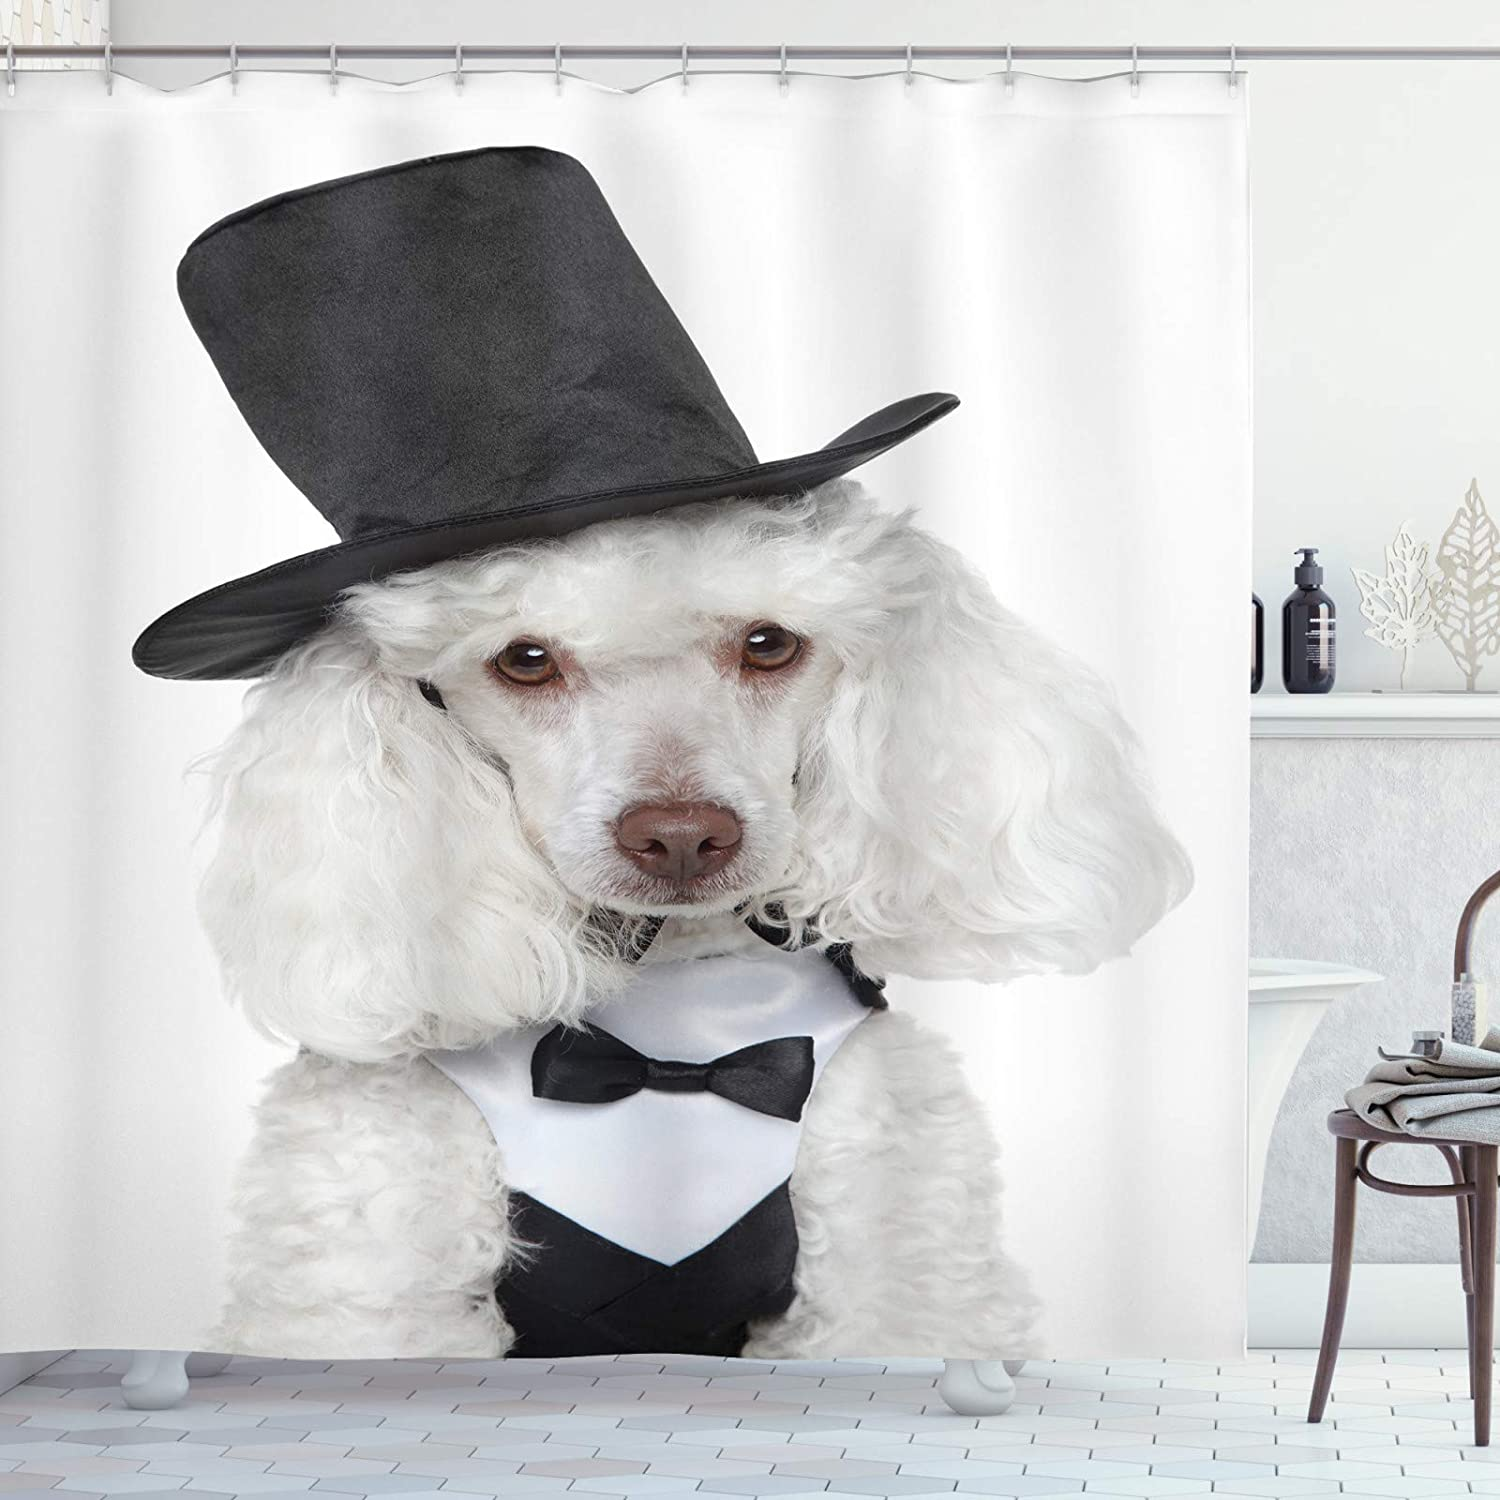 Abakuhaus Dogs Shower Curtain Sad Looking Furry Portrait In A Waistcoat And Hat Animal Theme Cloth Fabric Bathroom Decor Set With Hooks 78 Inches Dark Grey White Amazon Co Uk Kitchen Home